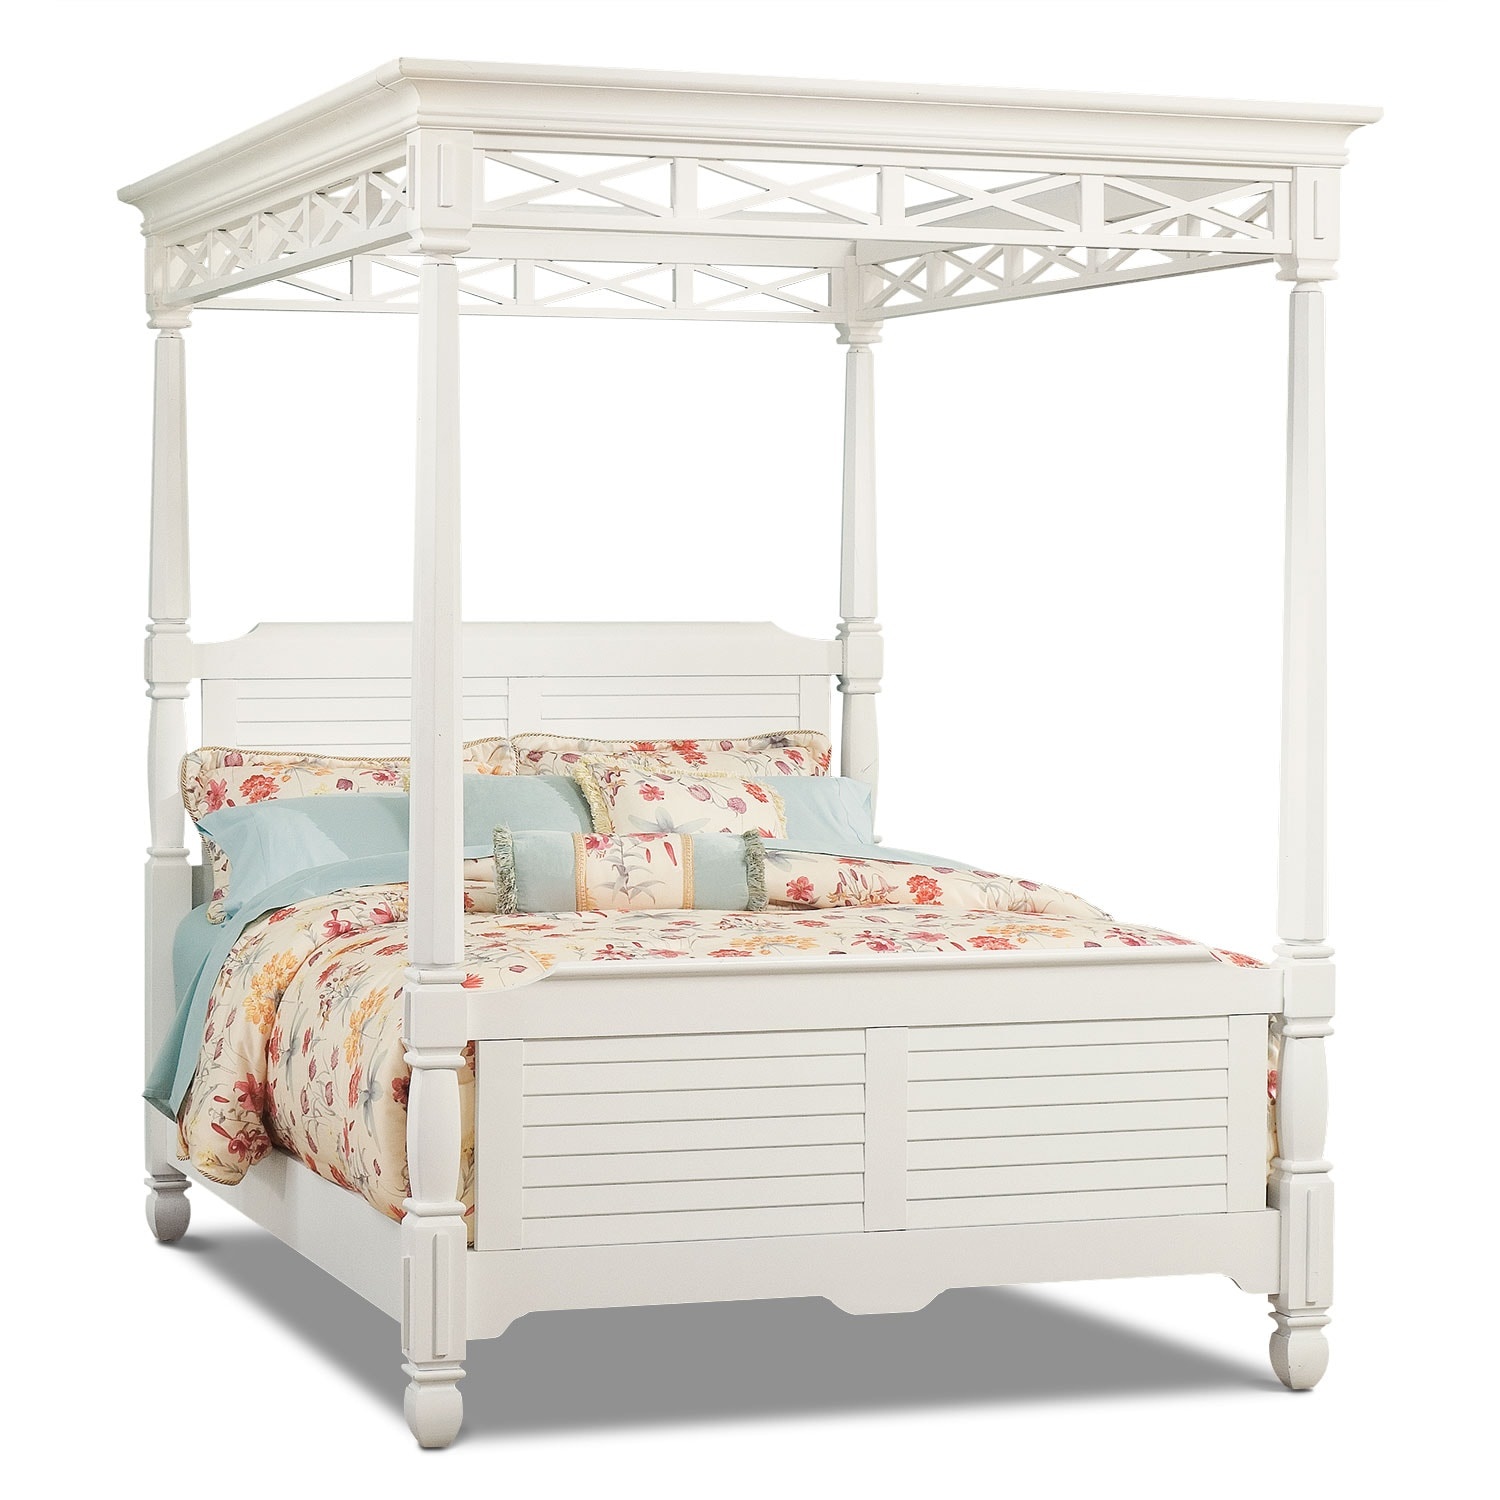 Plantation Cove King Canopy Bed - White